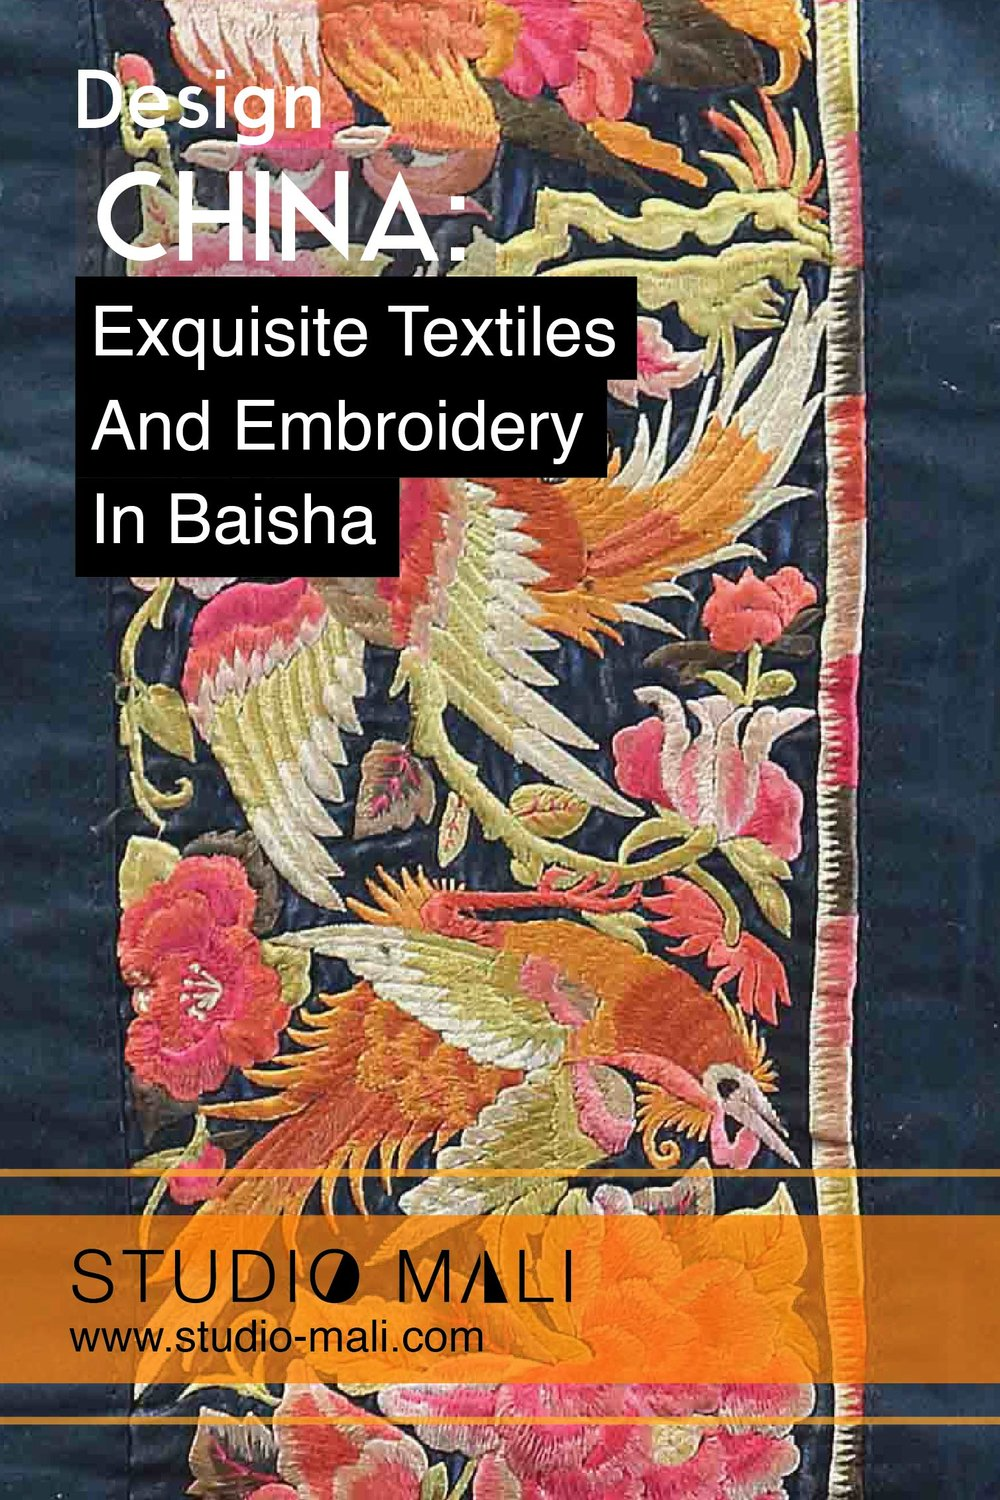 China - Exquisite Embroidery And Textiles In Baisha, by Studio Mali